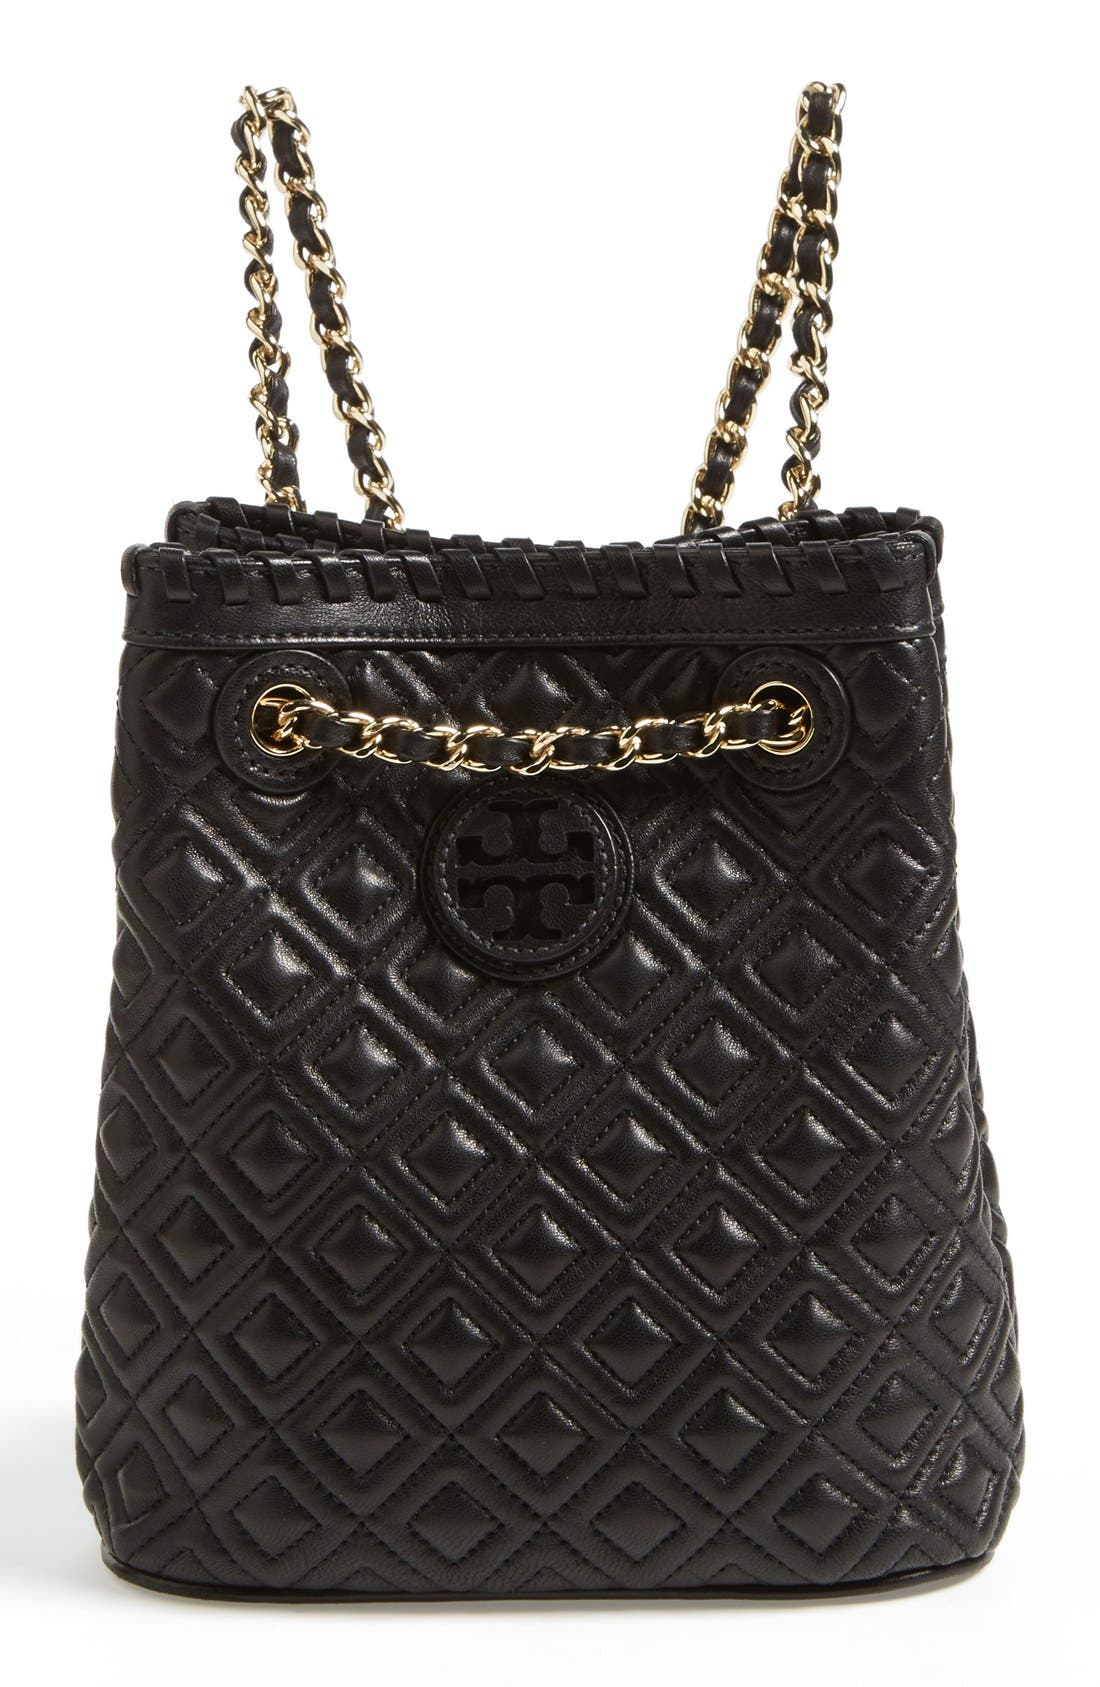 Alternate Image 1 Selected - Tory Burch 'Small Marion' Quilted Leather Backpack